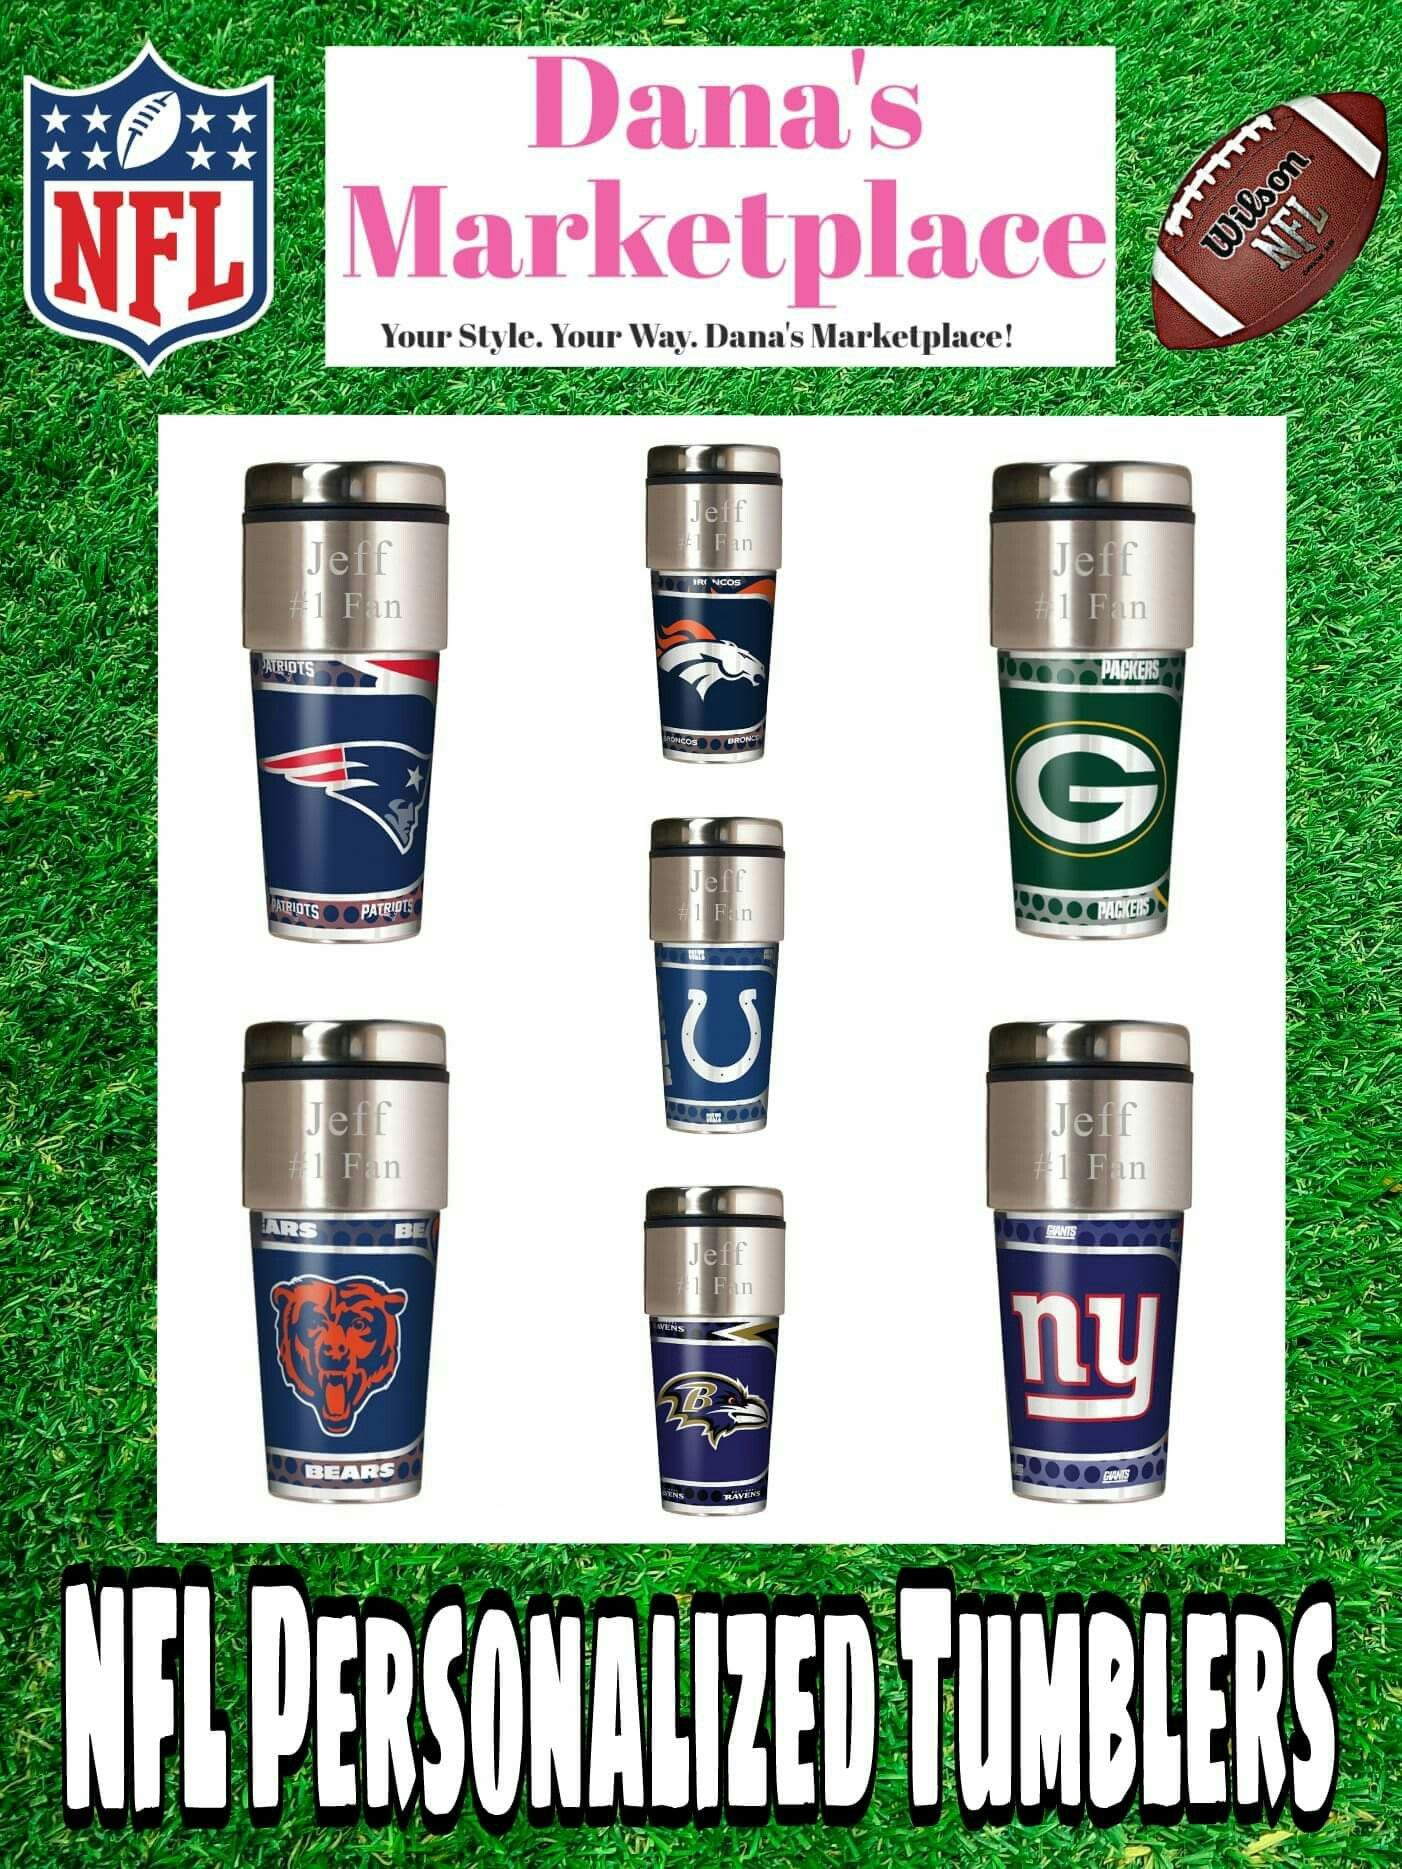 33be0cb9402 Personalized NFL tumblers! Just in time for football season!! Find ...